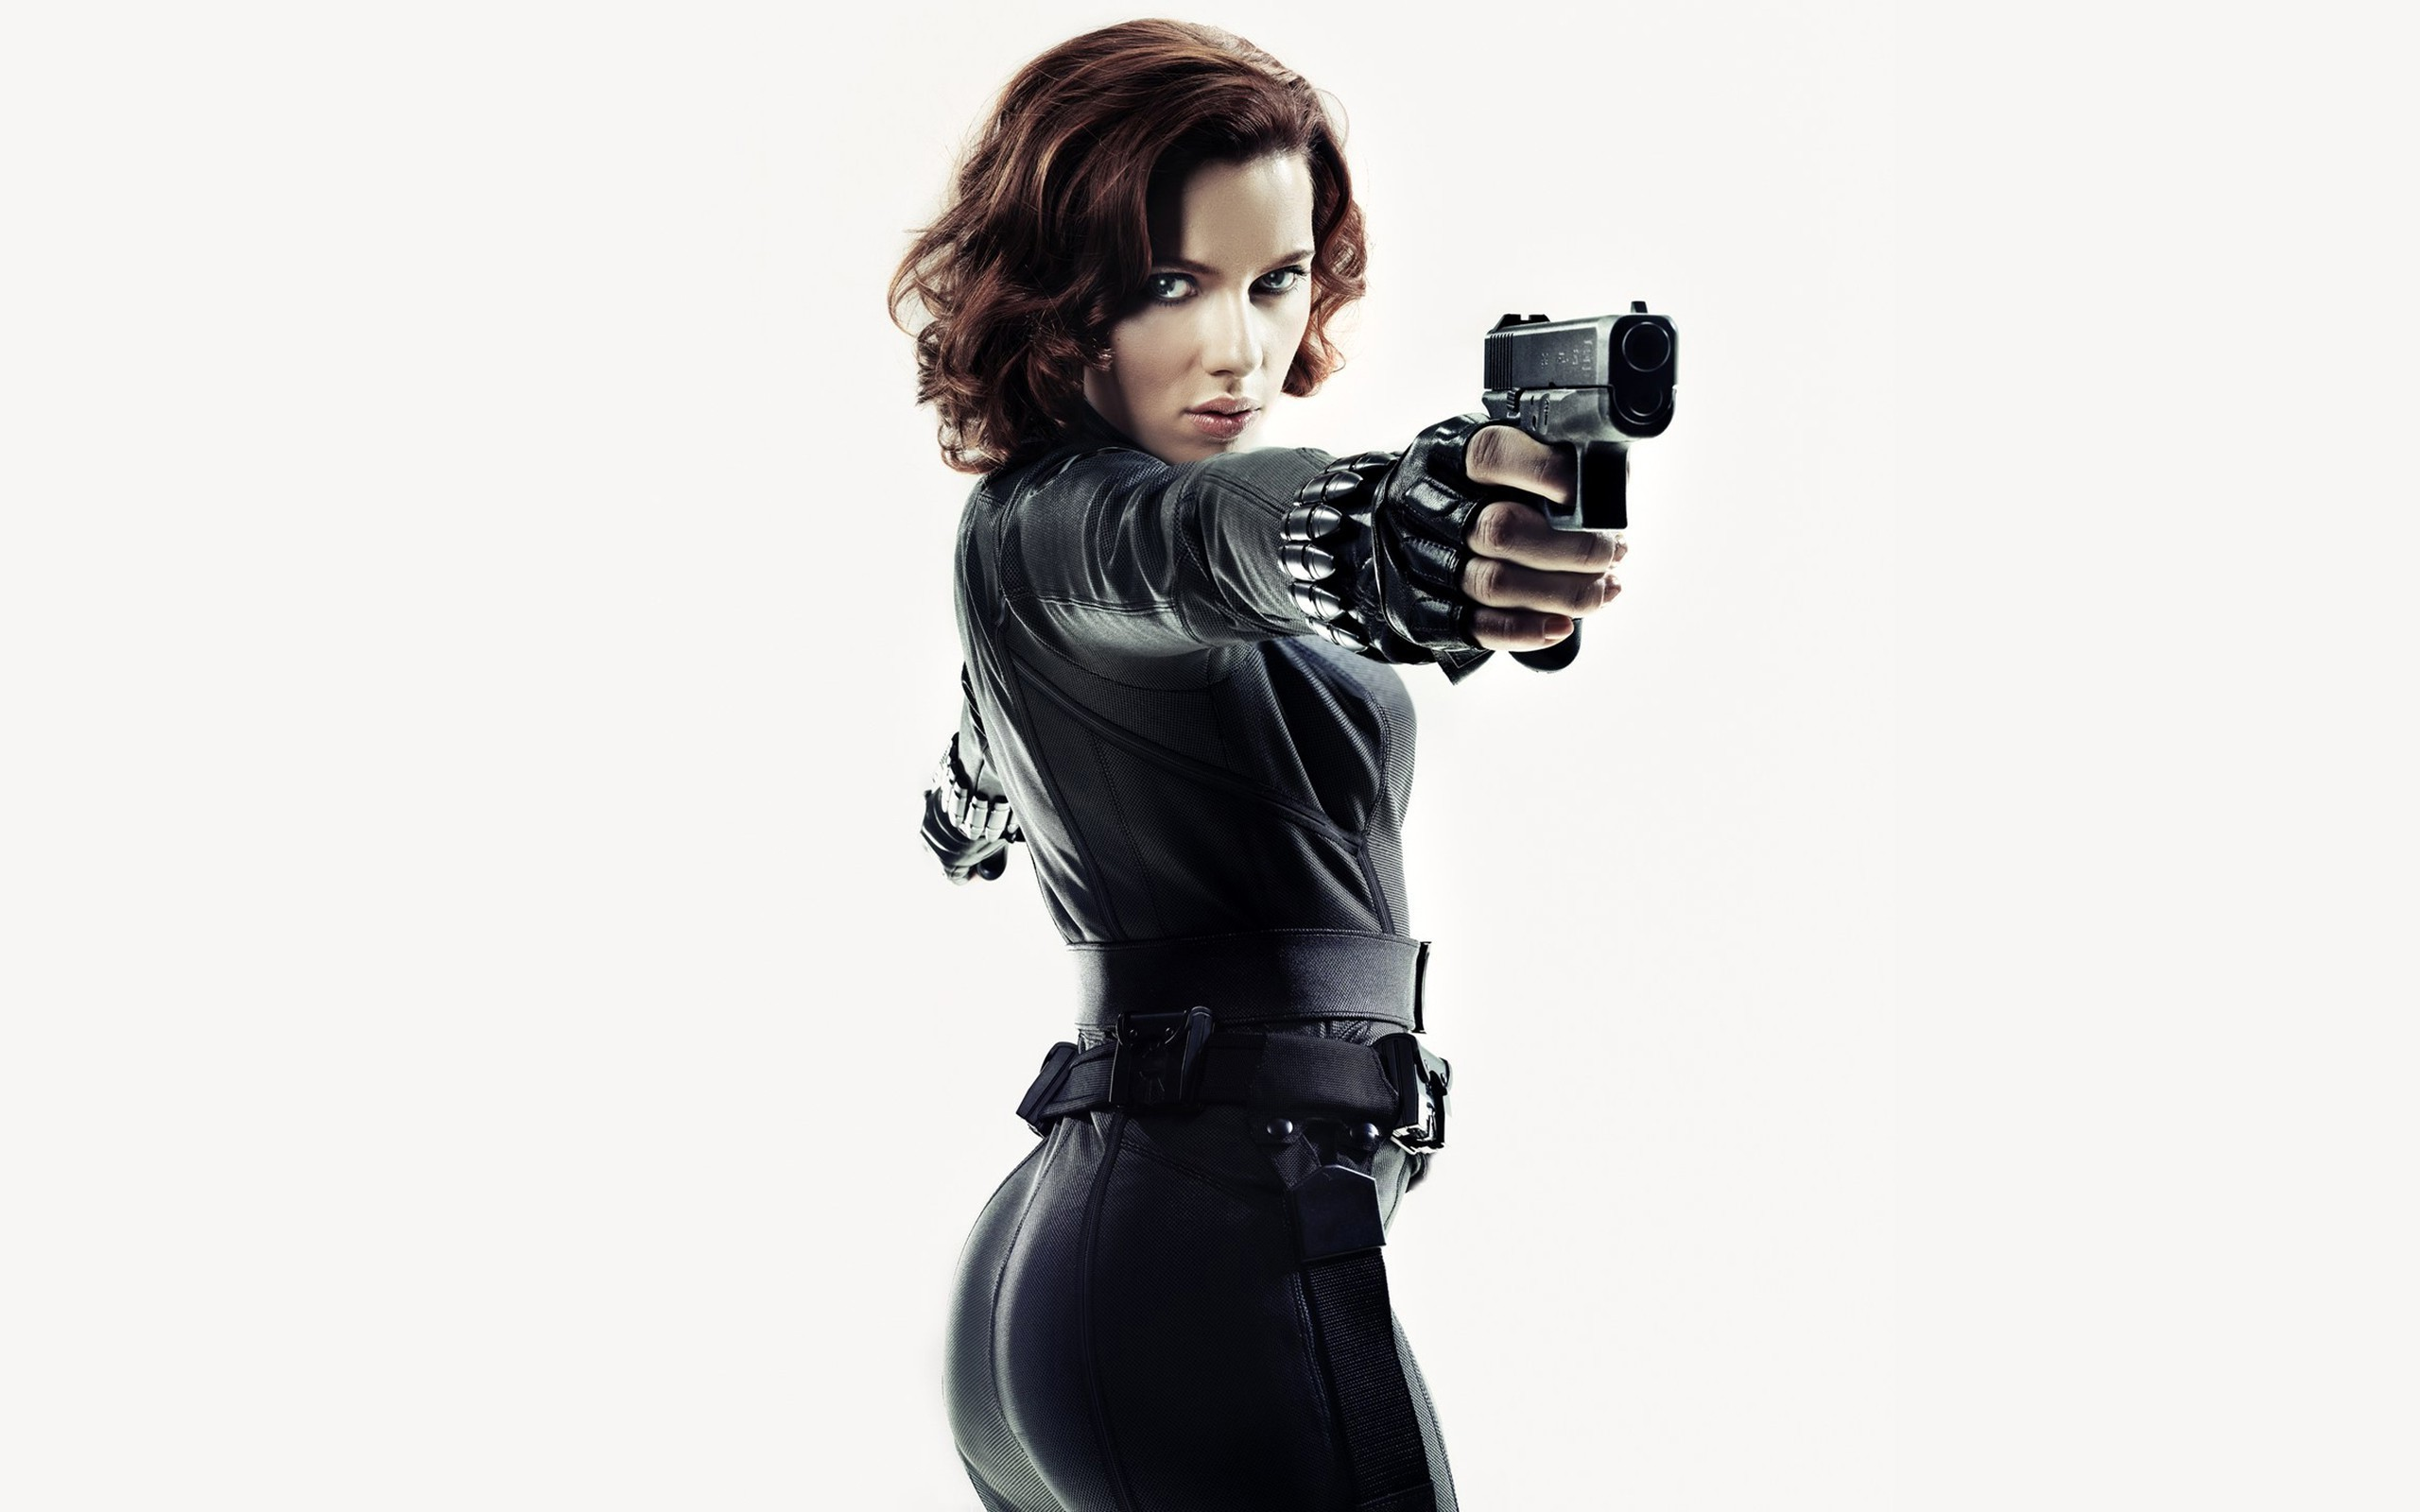 Scarlett johansson black widow wallpaper - photo#17